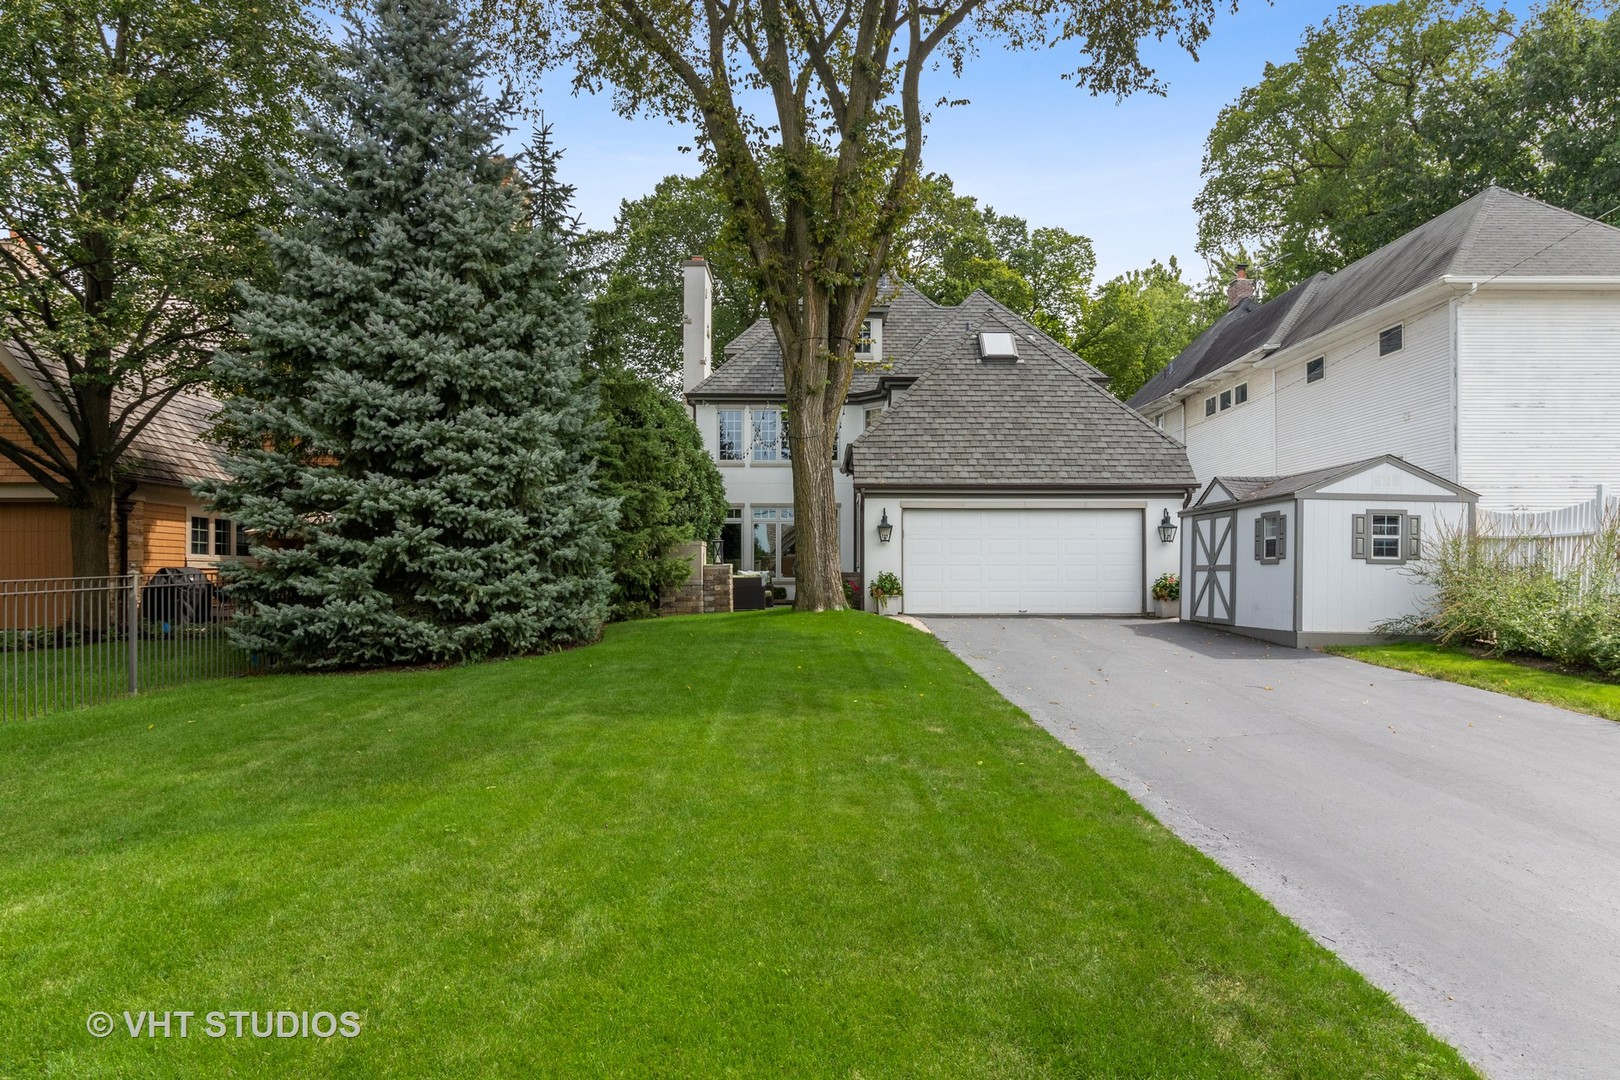 628 South Lincoln, Hinsdale, Illinois, 60521